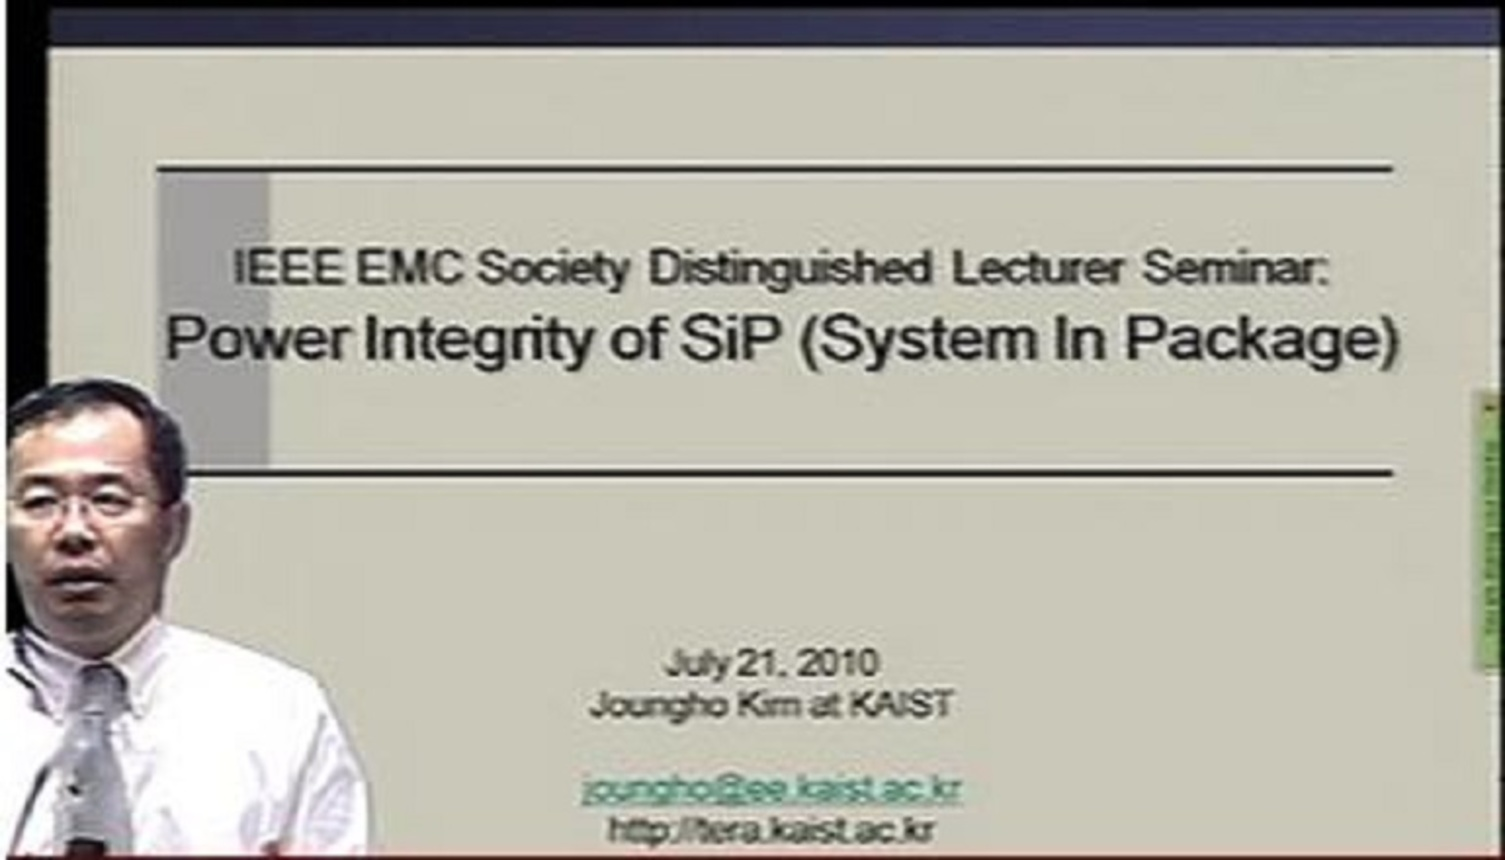 Power Integrity of SiP (System in Package) Video